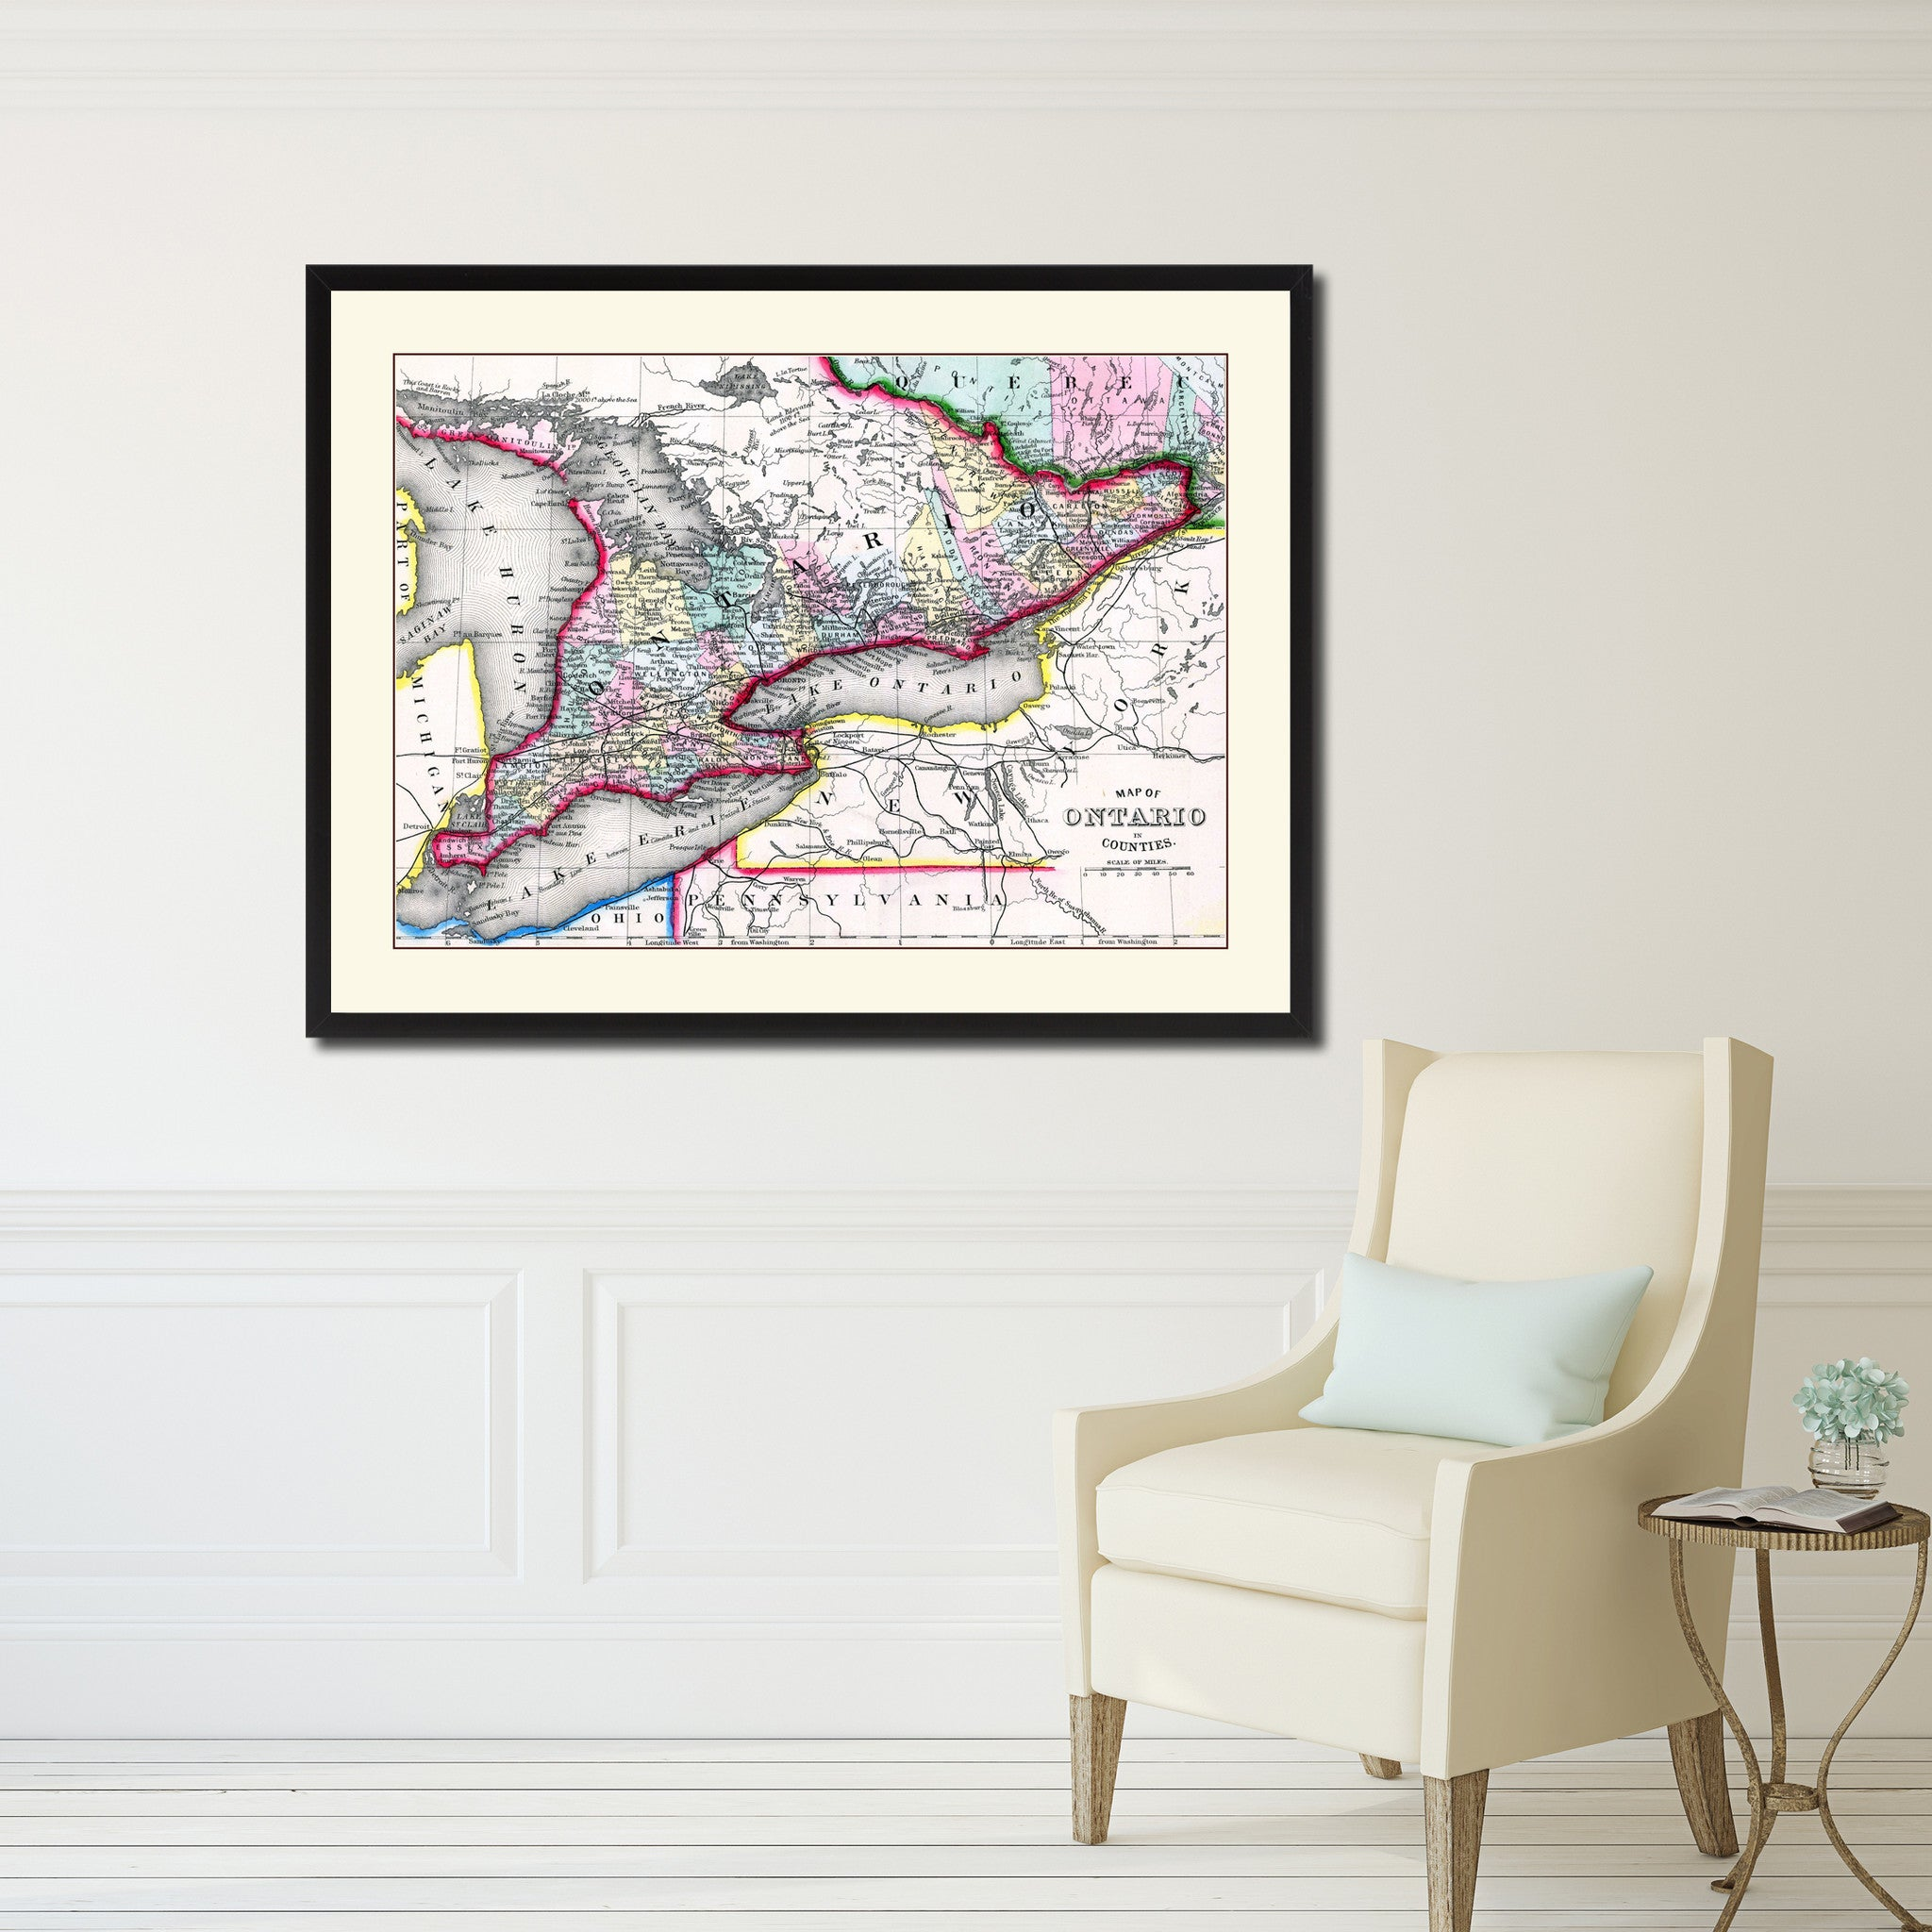 Canada Home Decor Ideas: Ontario Canada Vintage Antique Map Wall Art Bedroom Home